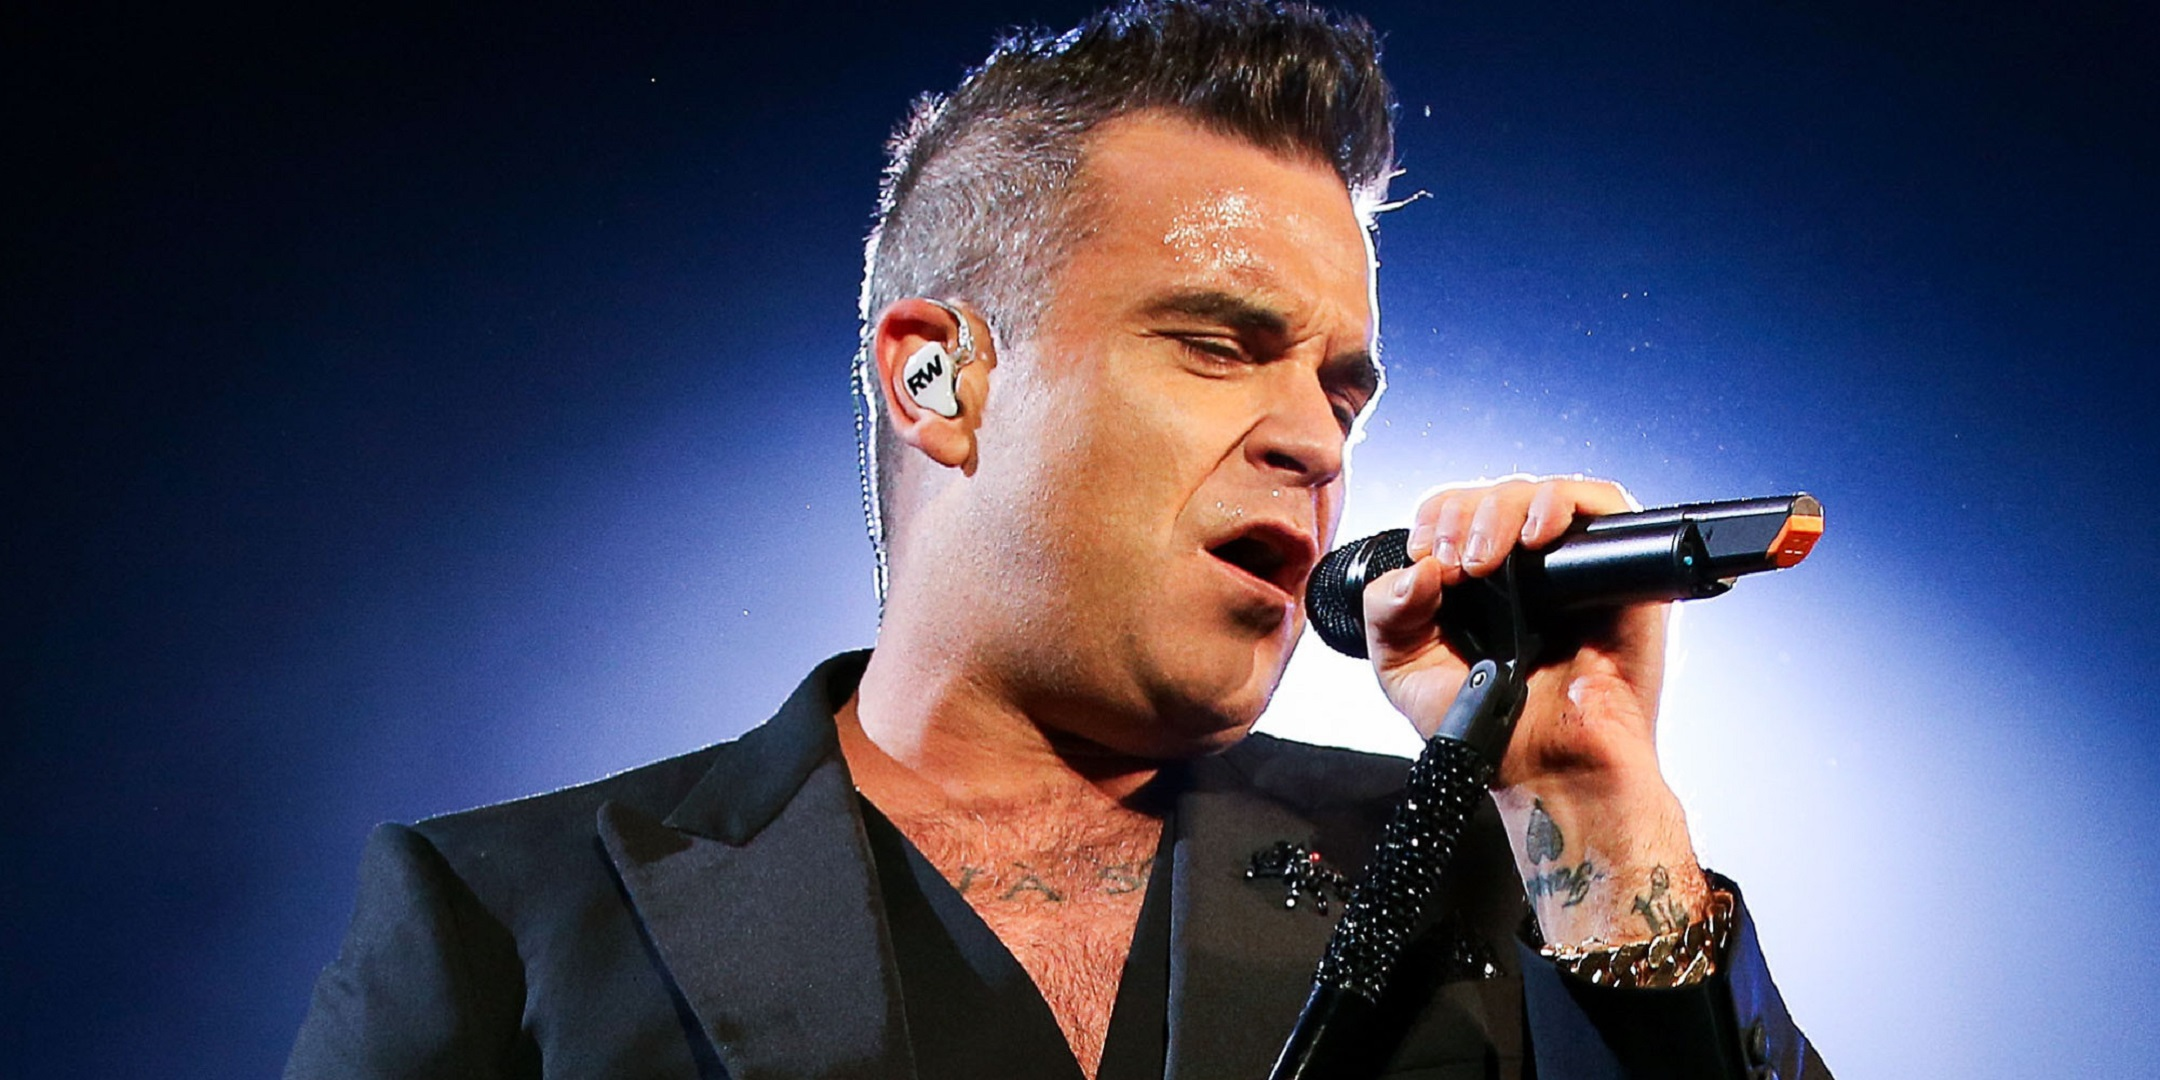 robbie williams - photo #11